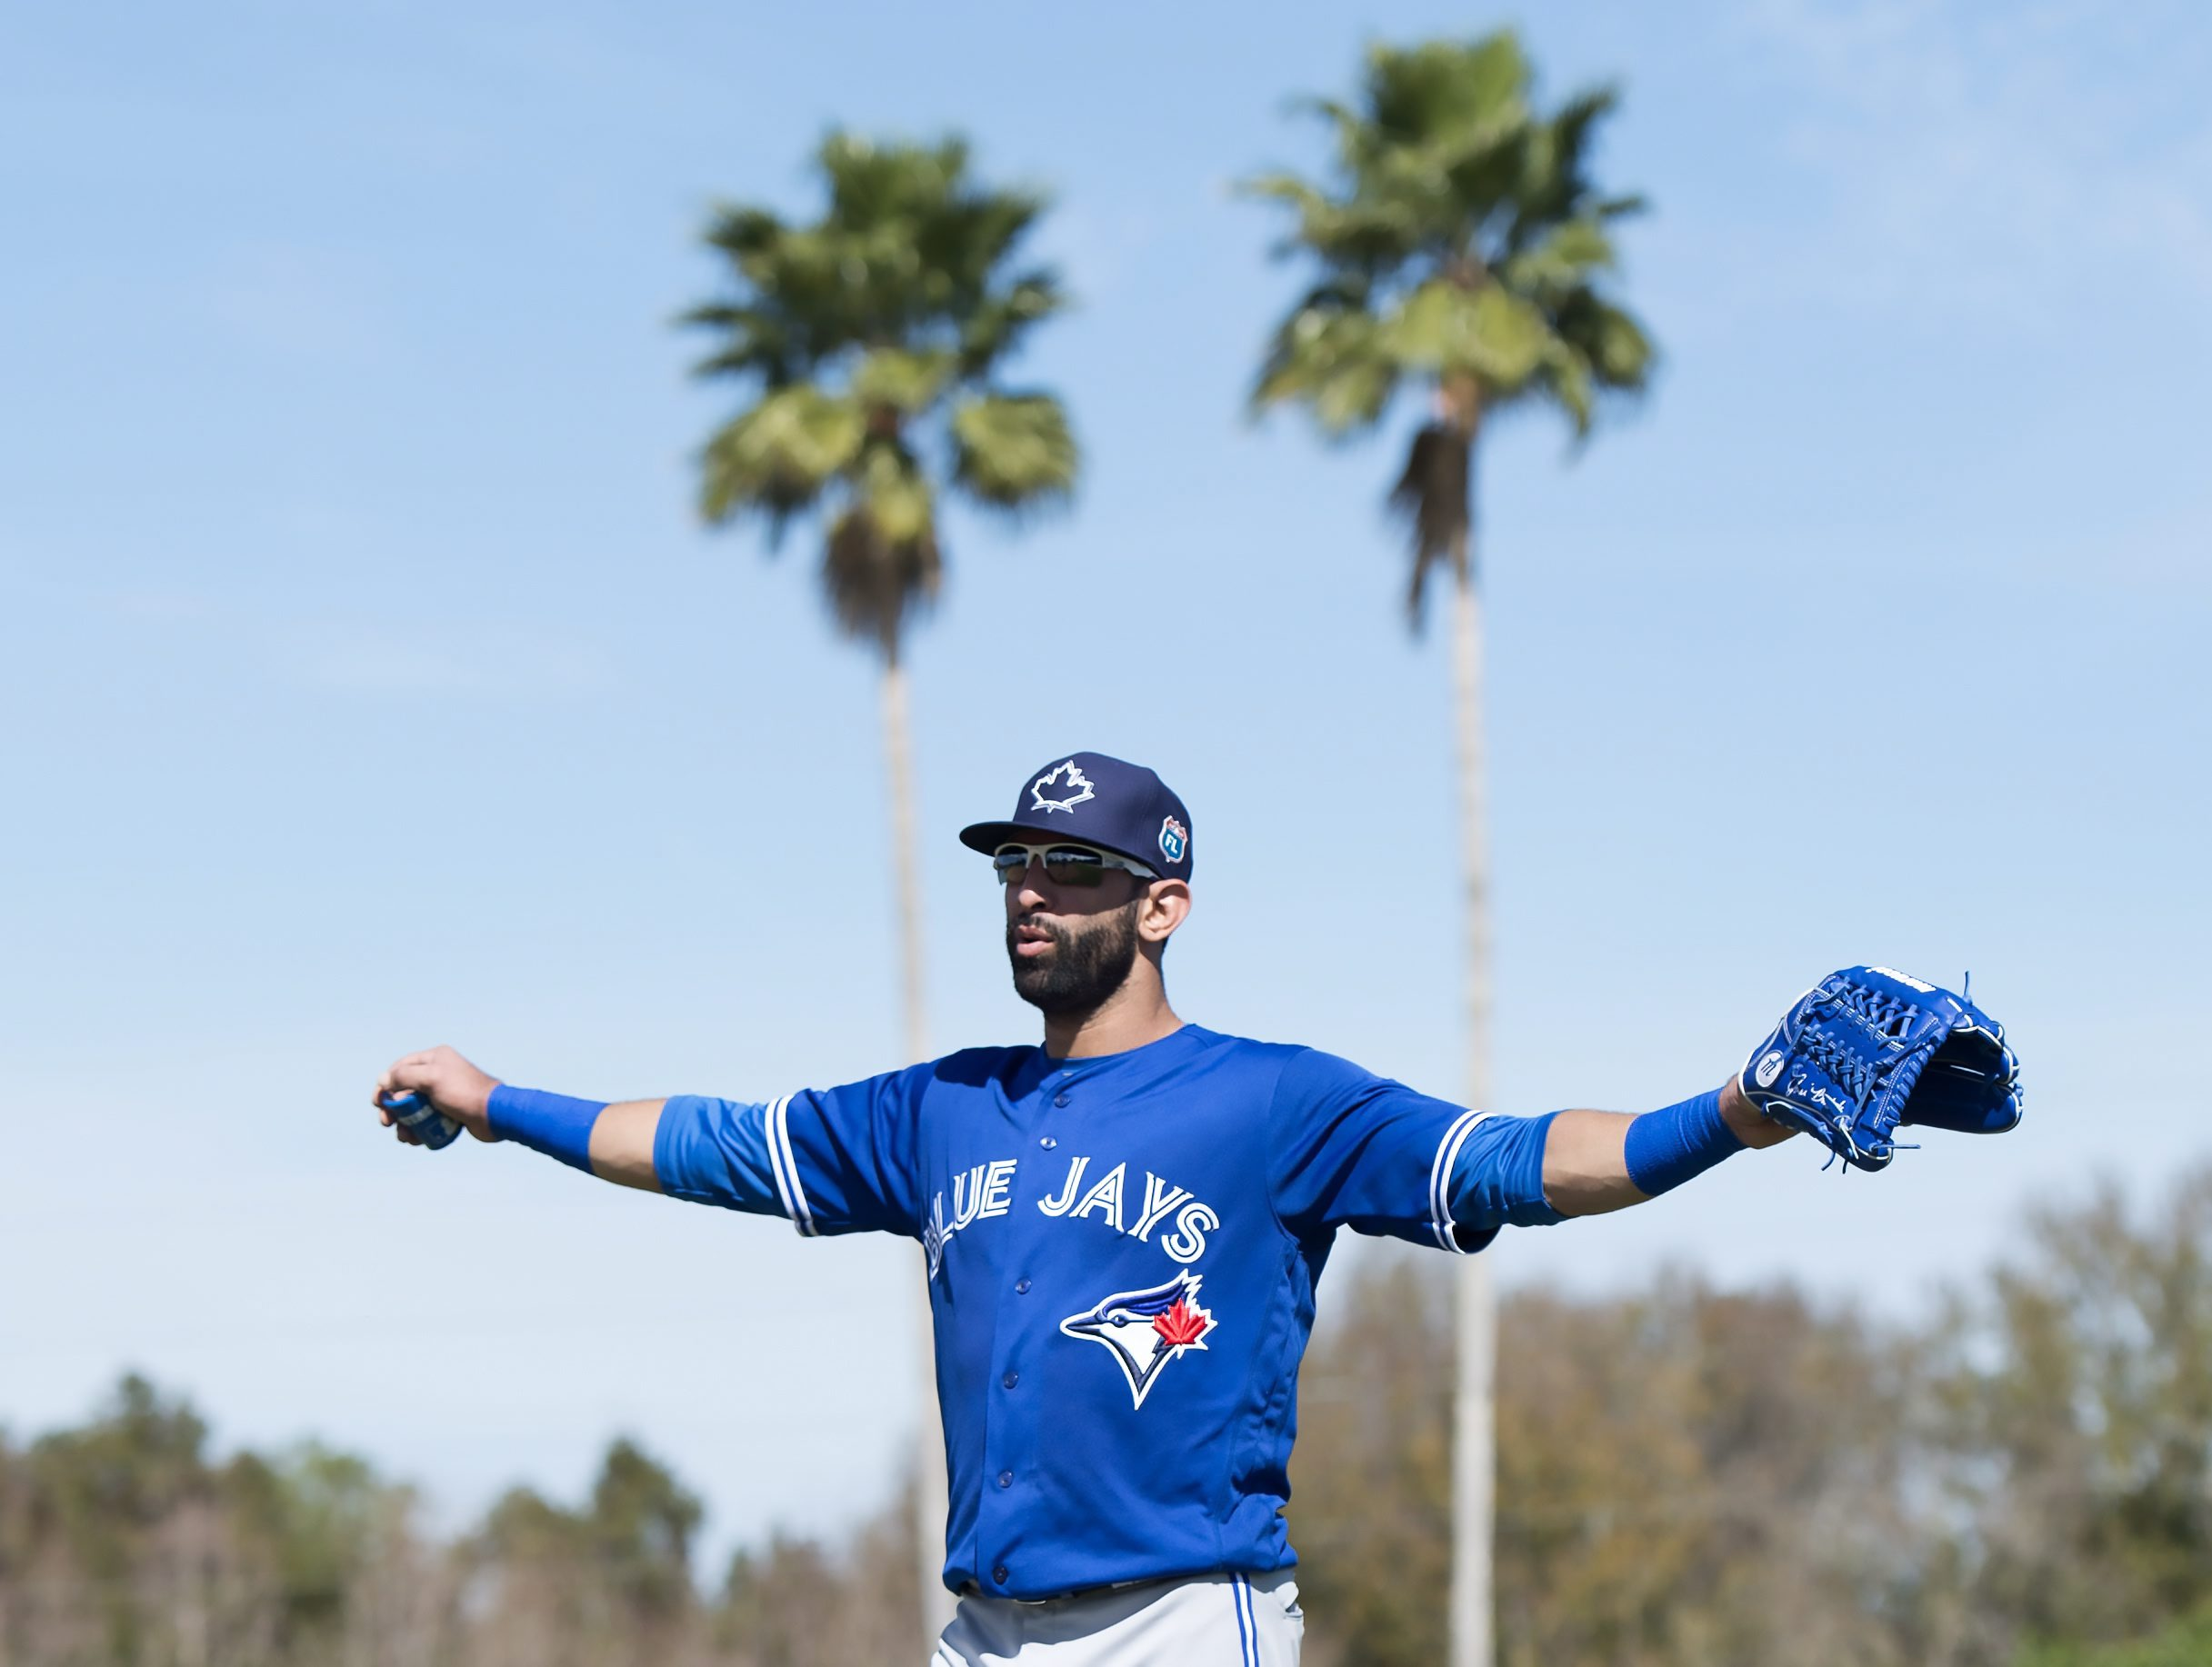 Toronto Blue Jays outfielder Jose Bautista stretches his arms as he walks up the field in the first official spring training baseball workout in Dunedin, Fla., Monday Feb. 22, 2016. (Frank Gunn/The Canadian Press via AP) MANDATORY CREDIT